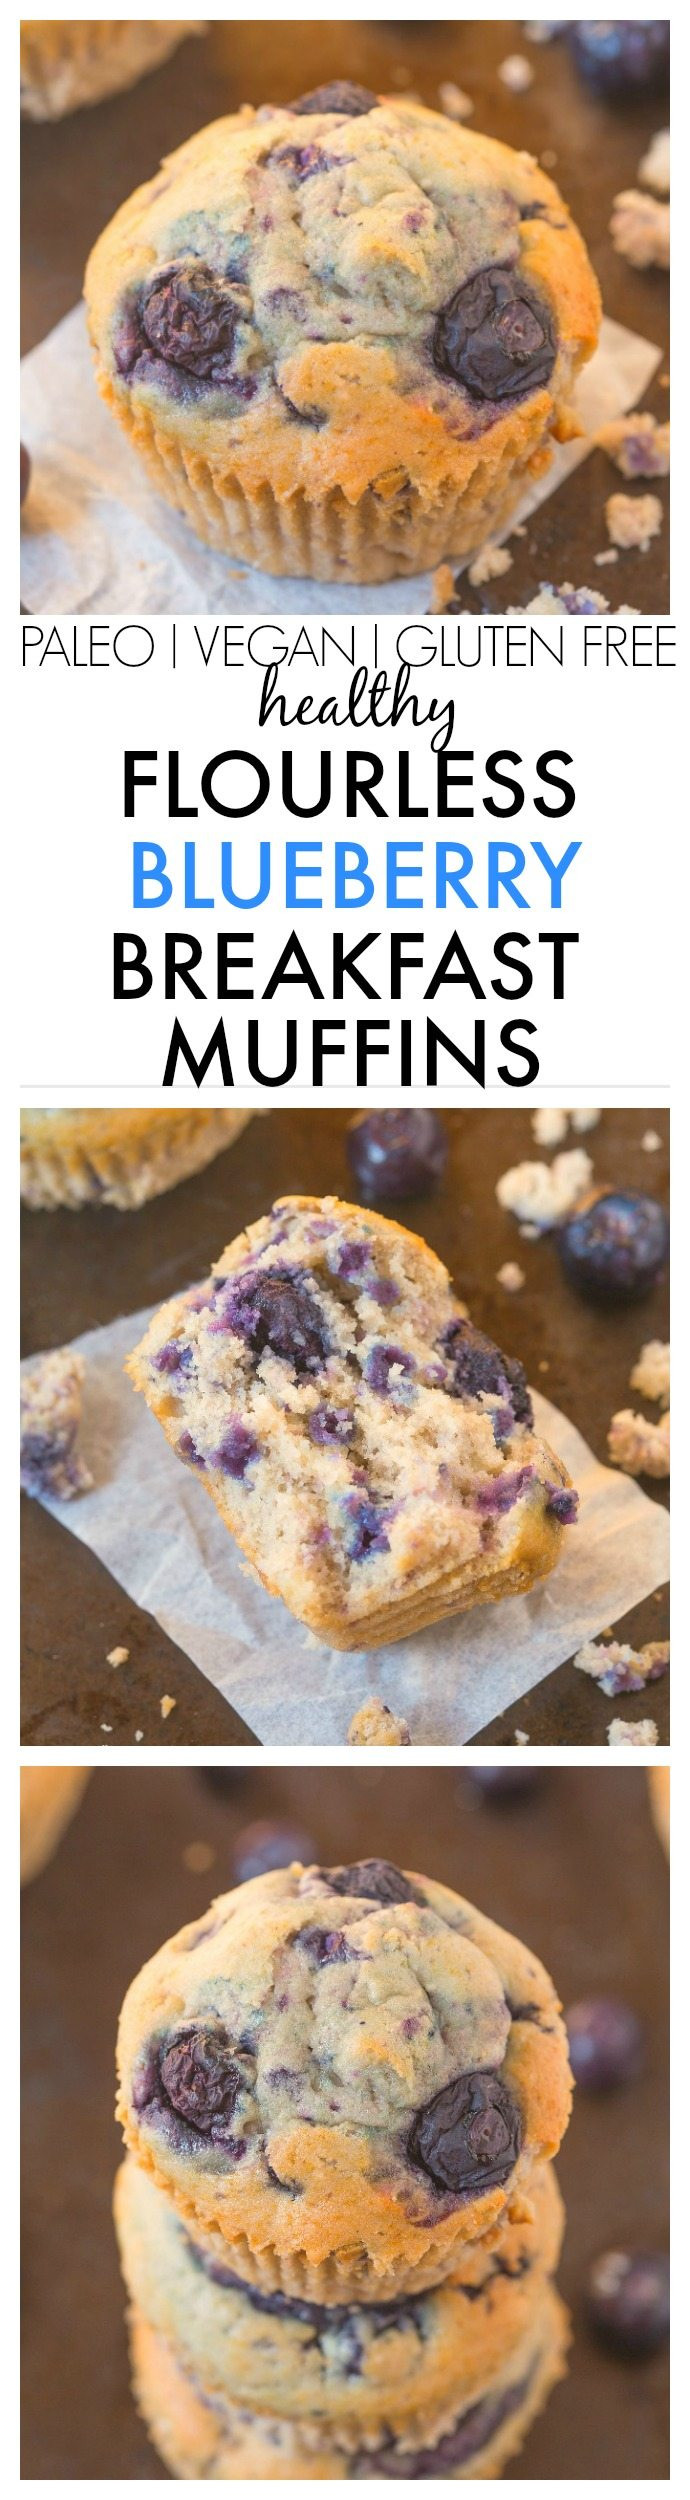 Healthy Blueberry Breakfast Recipes  Healthy Flourless Blueberry Breakfast Muffins